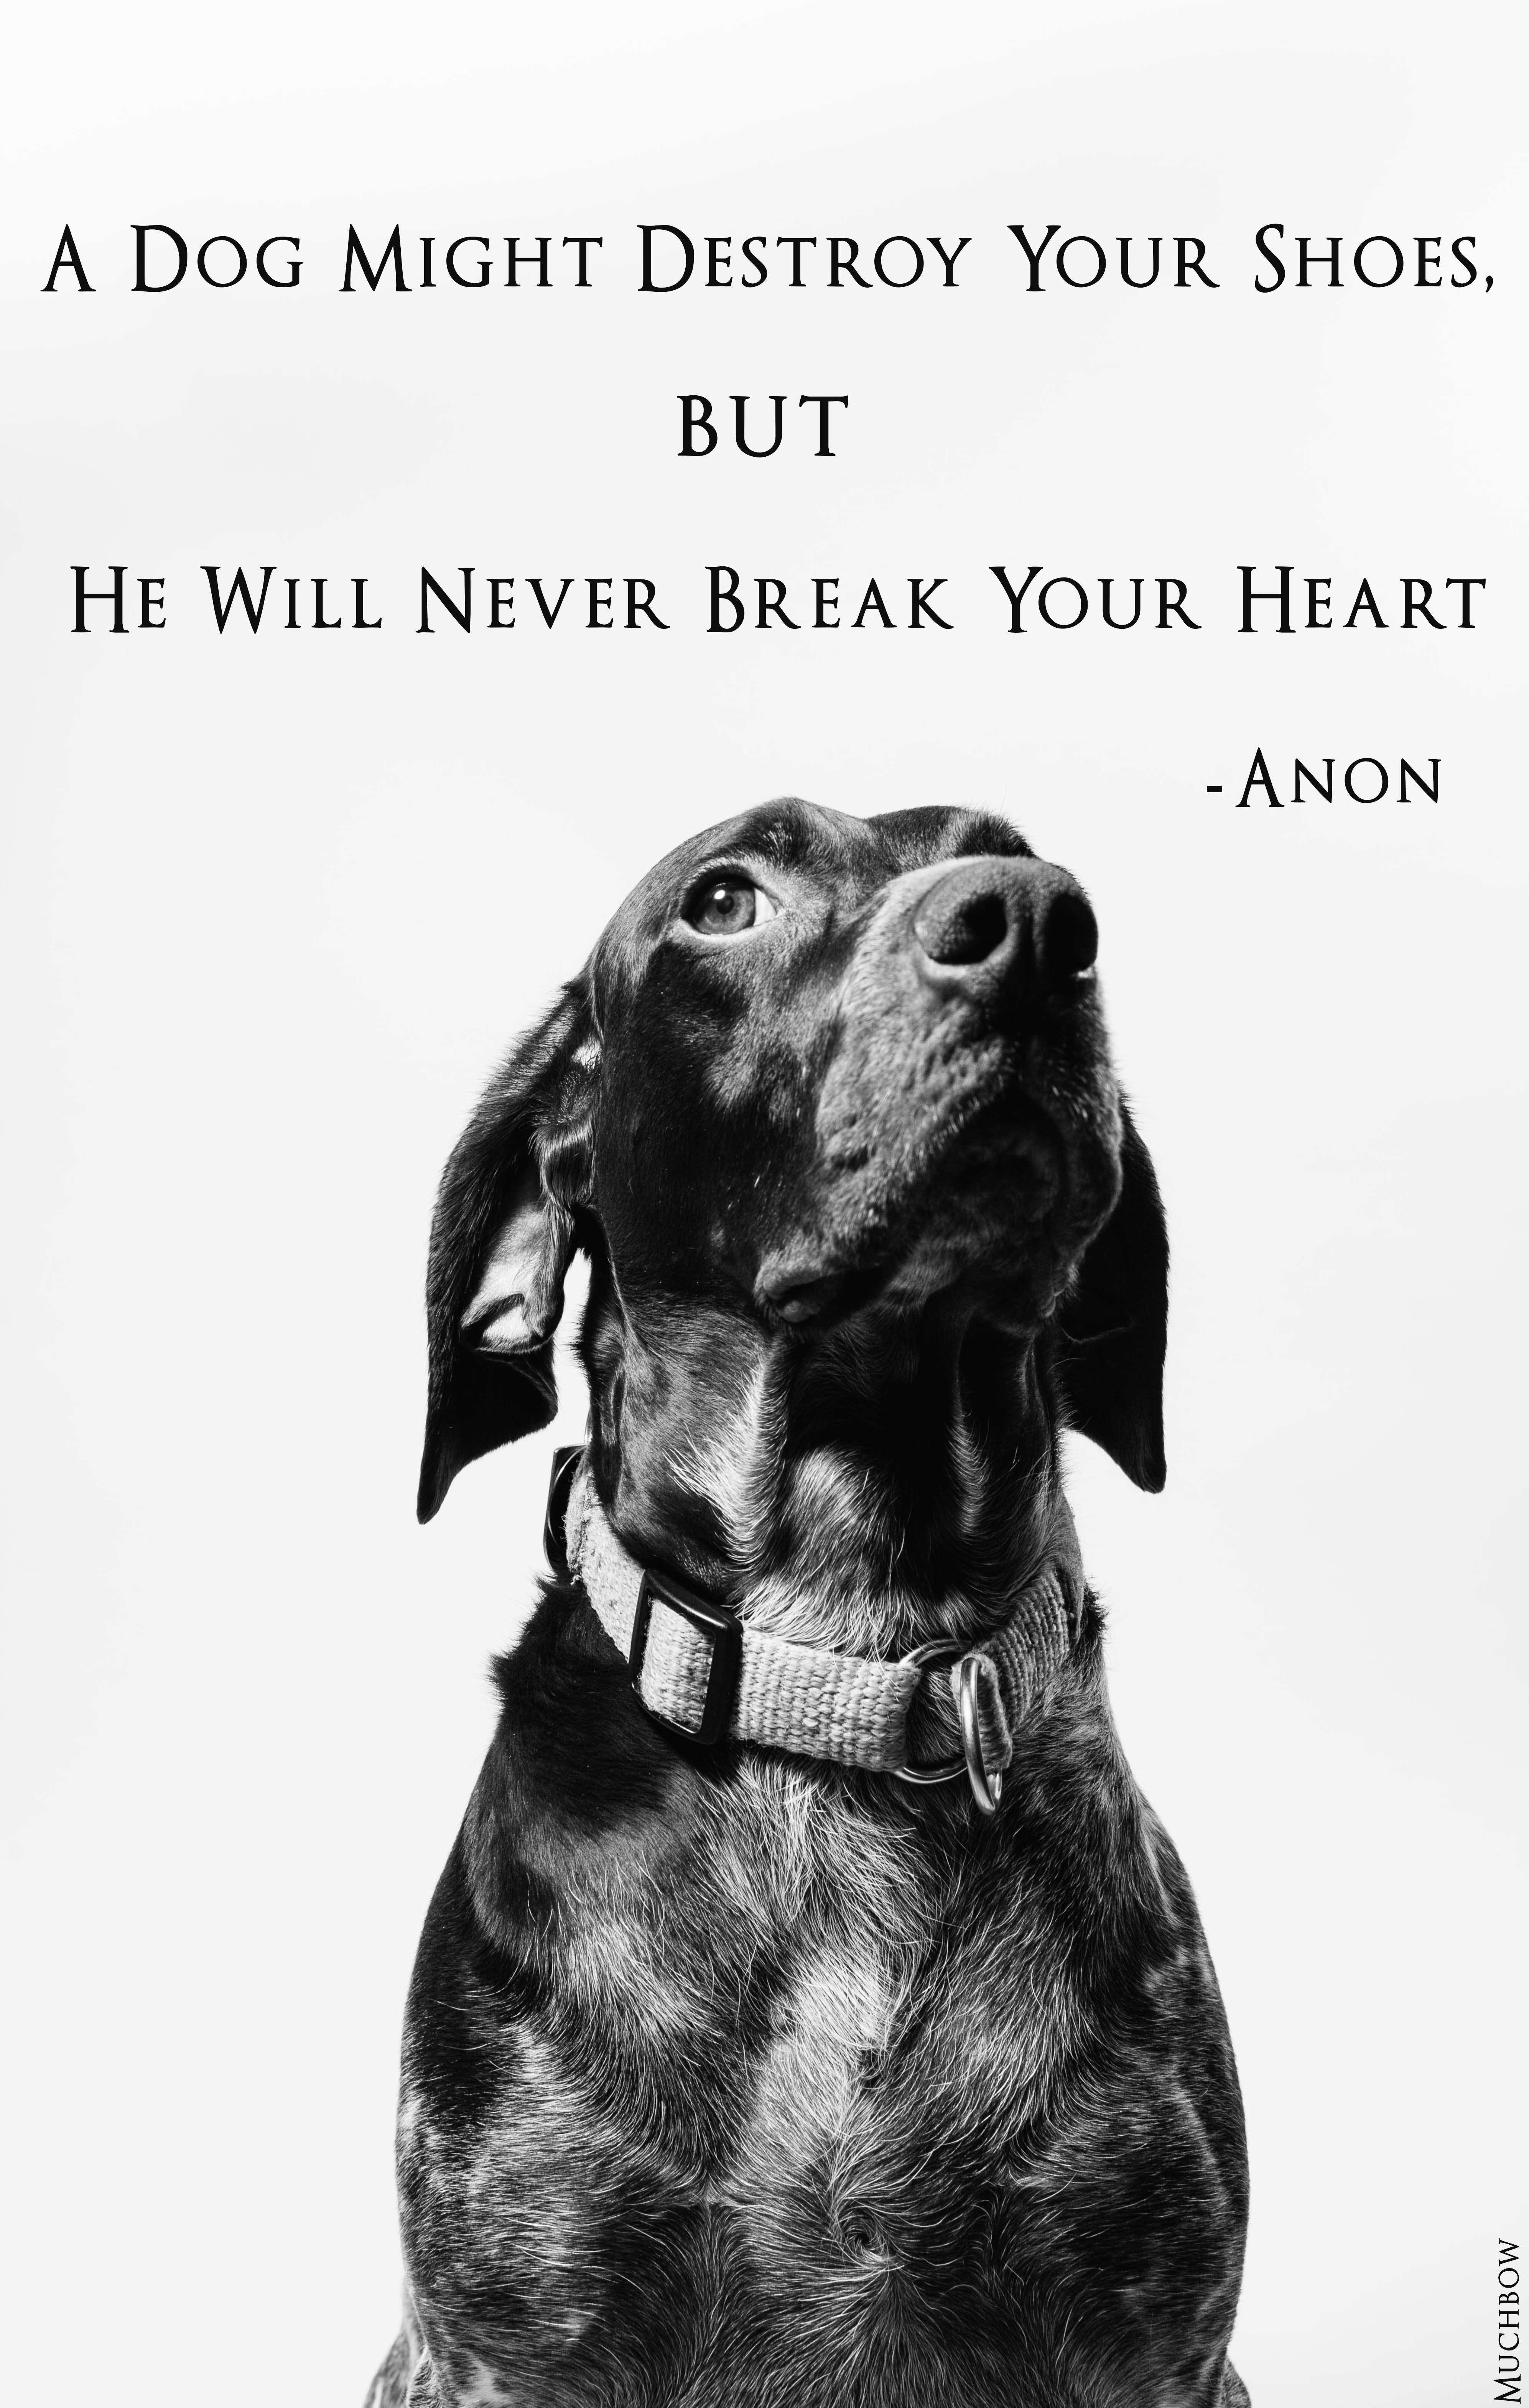 A Dog Might Destroy Your Shoes But He Will Never Break Your Heart Anonymous 3987x6280 Oc Deaf Dog Dog Sign Language Easiest Dogs To Train